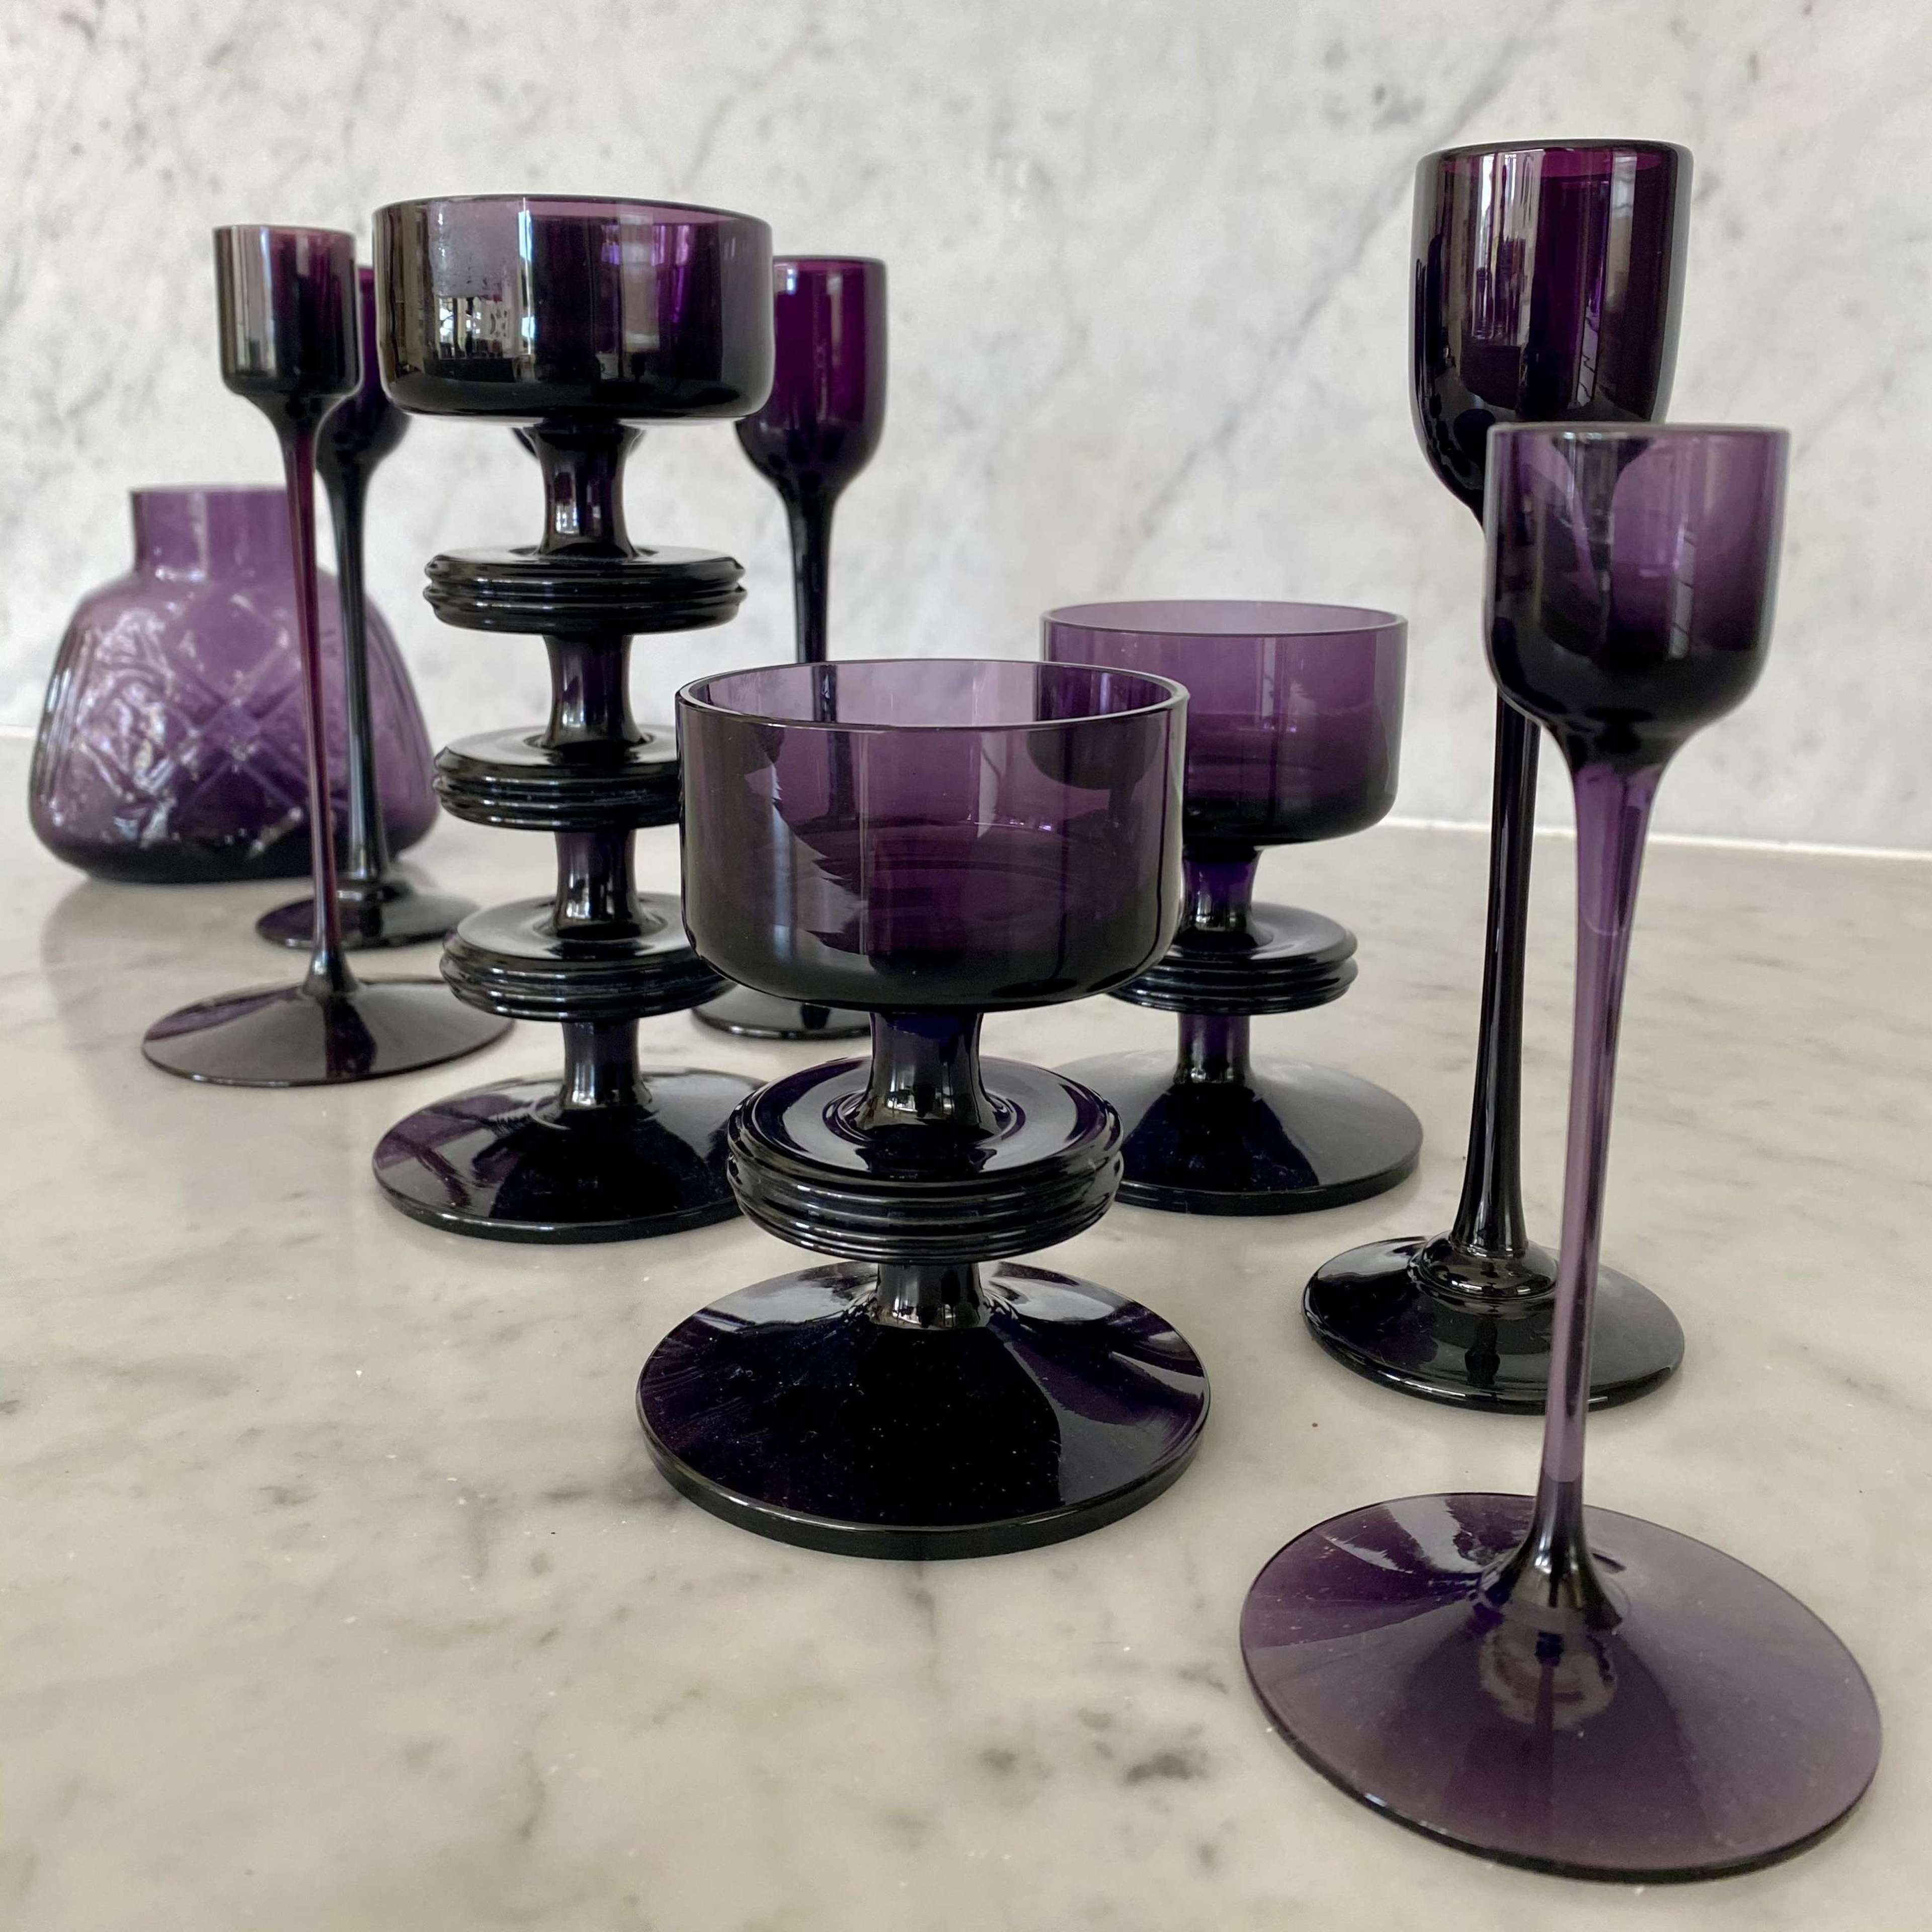 Matched set of 1970s purple glass candlesticks and vase